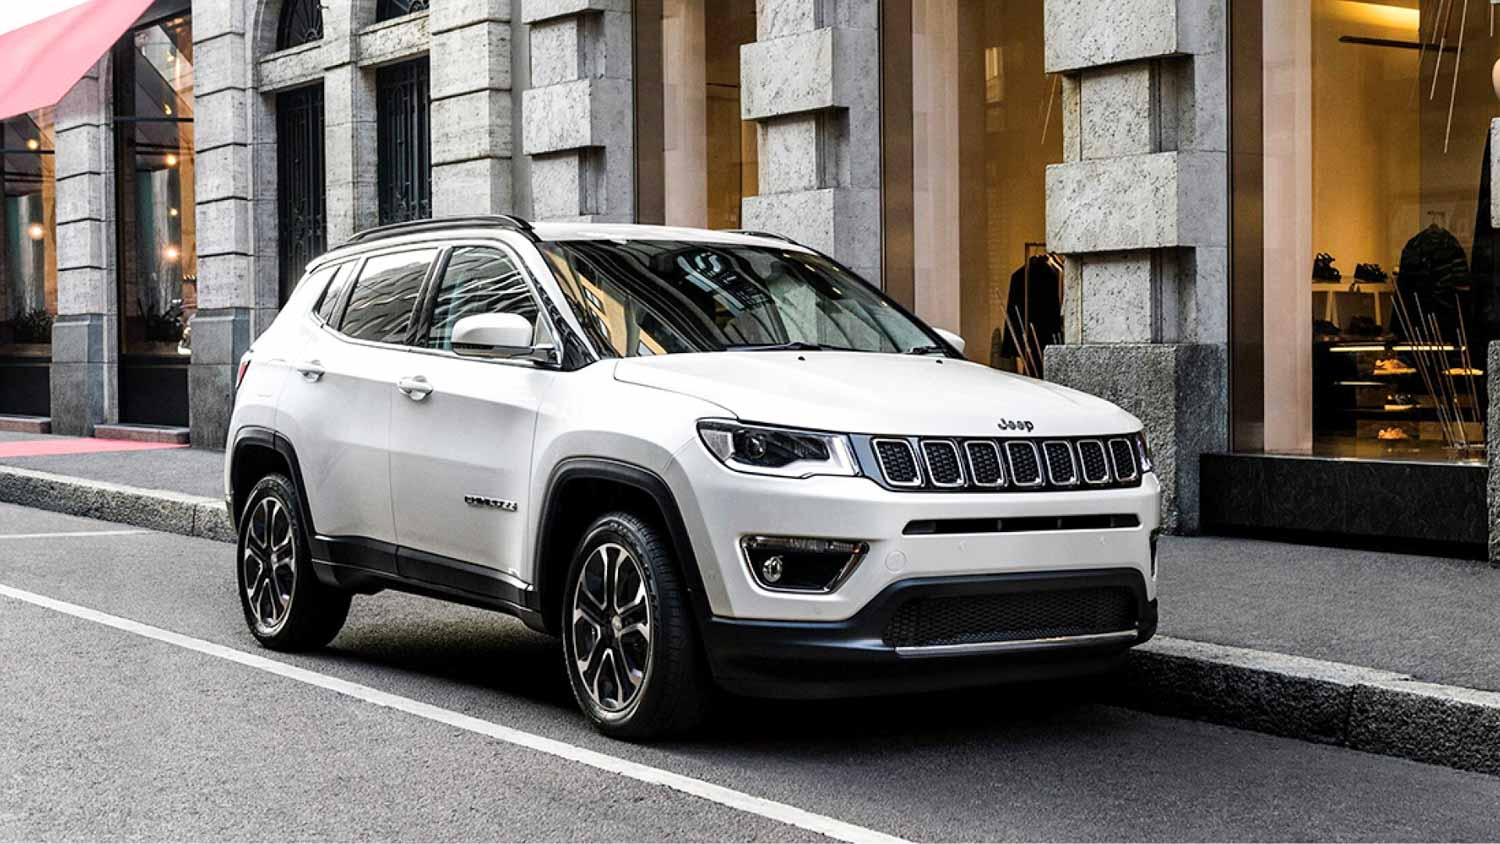 Just 163 Units Of Jeep Compass SUV Sold In March 2020